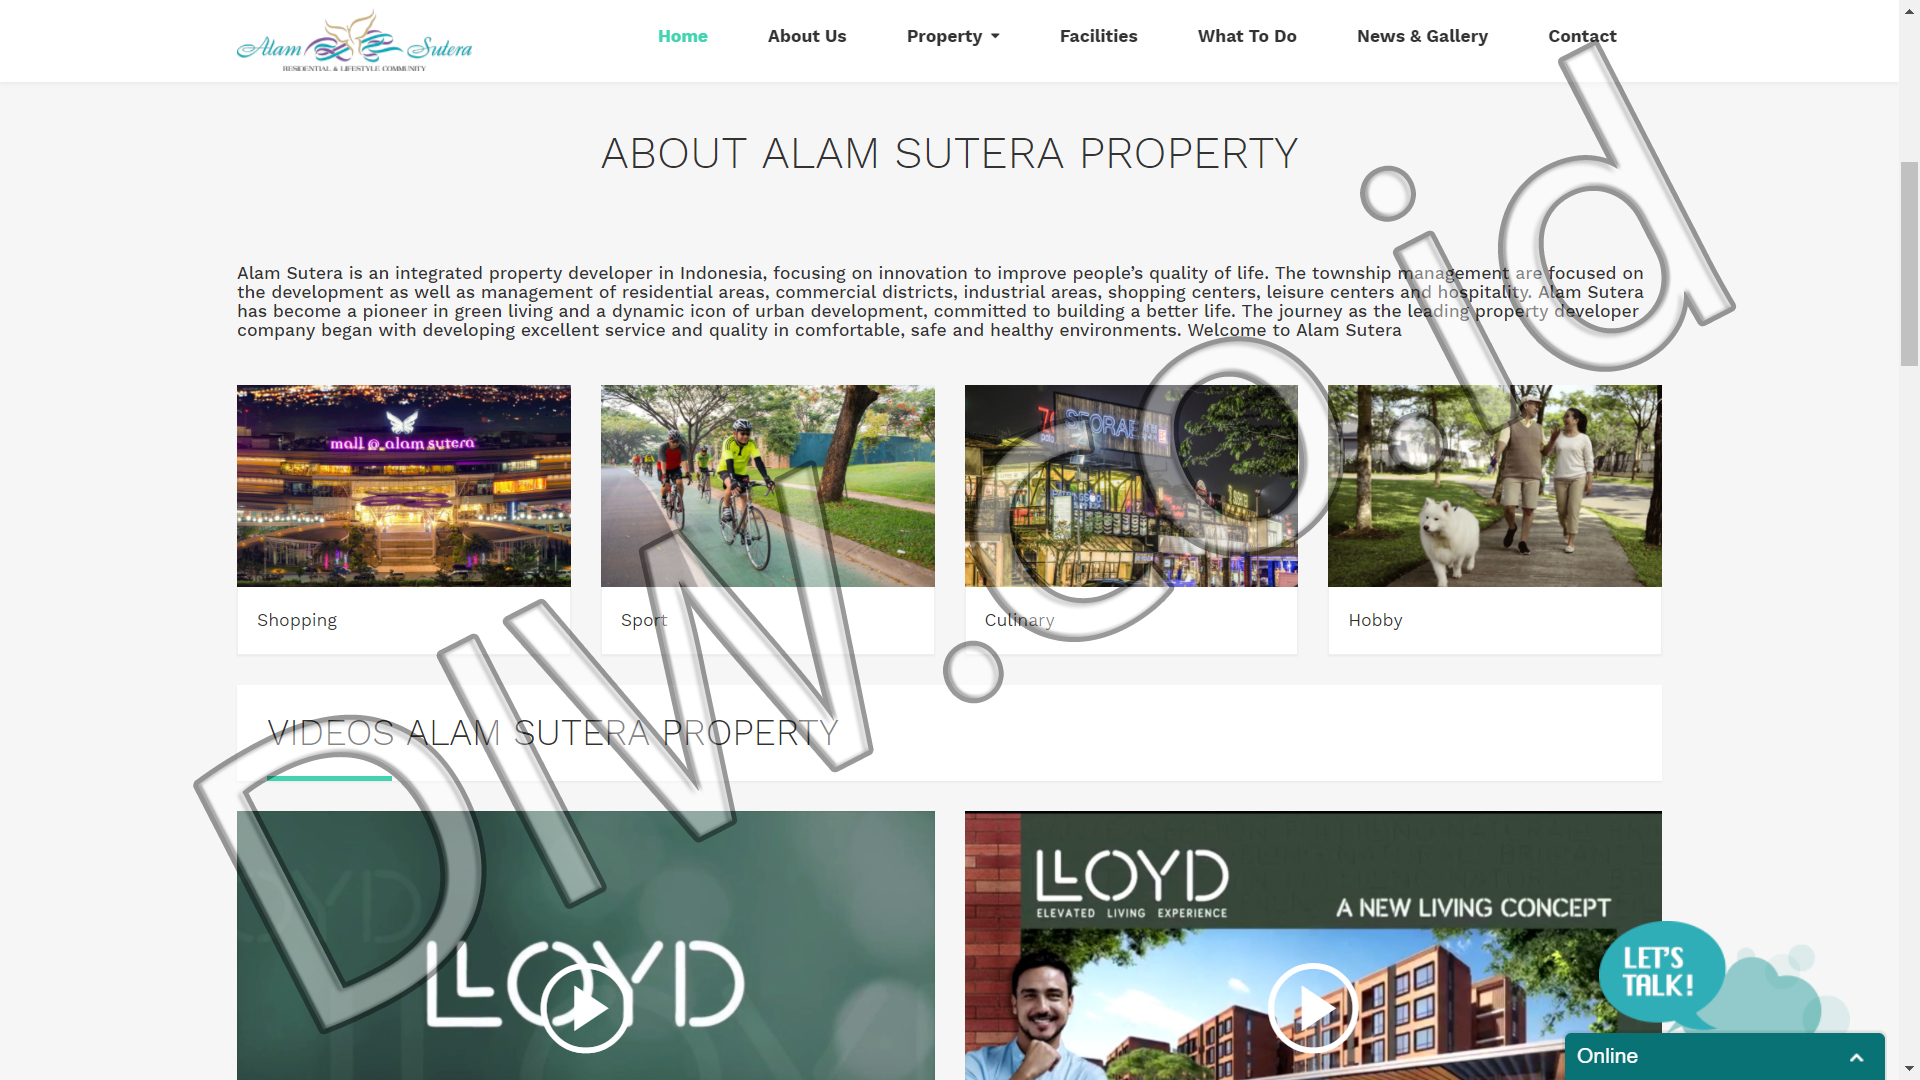 Portfolio 2 - Alam Sutera Property - Andri Sunardi - Freelancer - Web Developer - CEO DIW.co.id